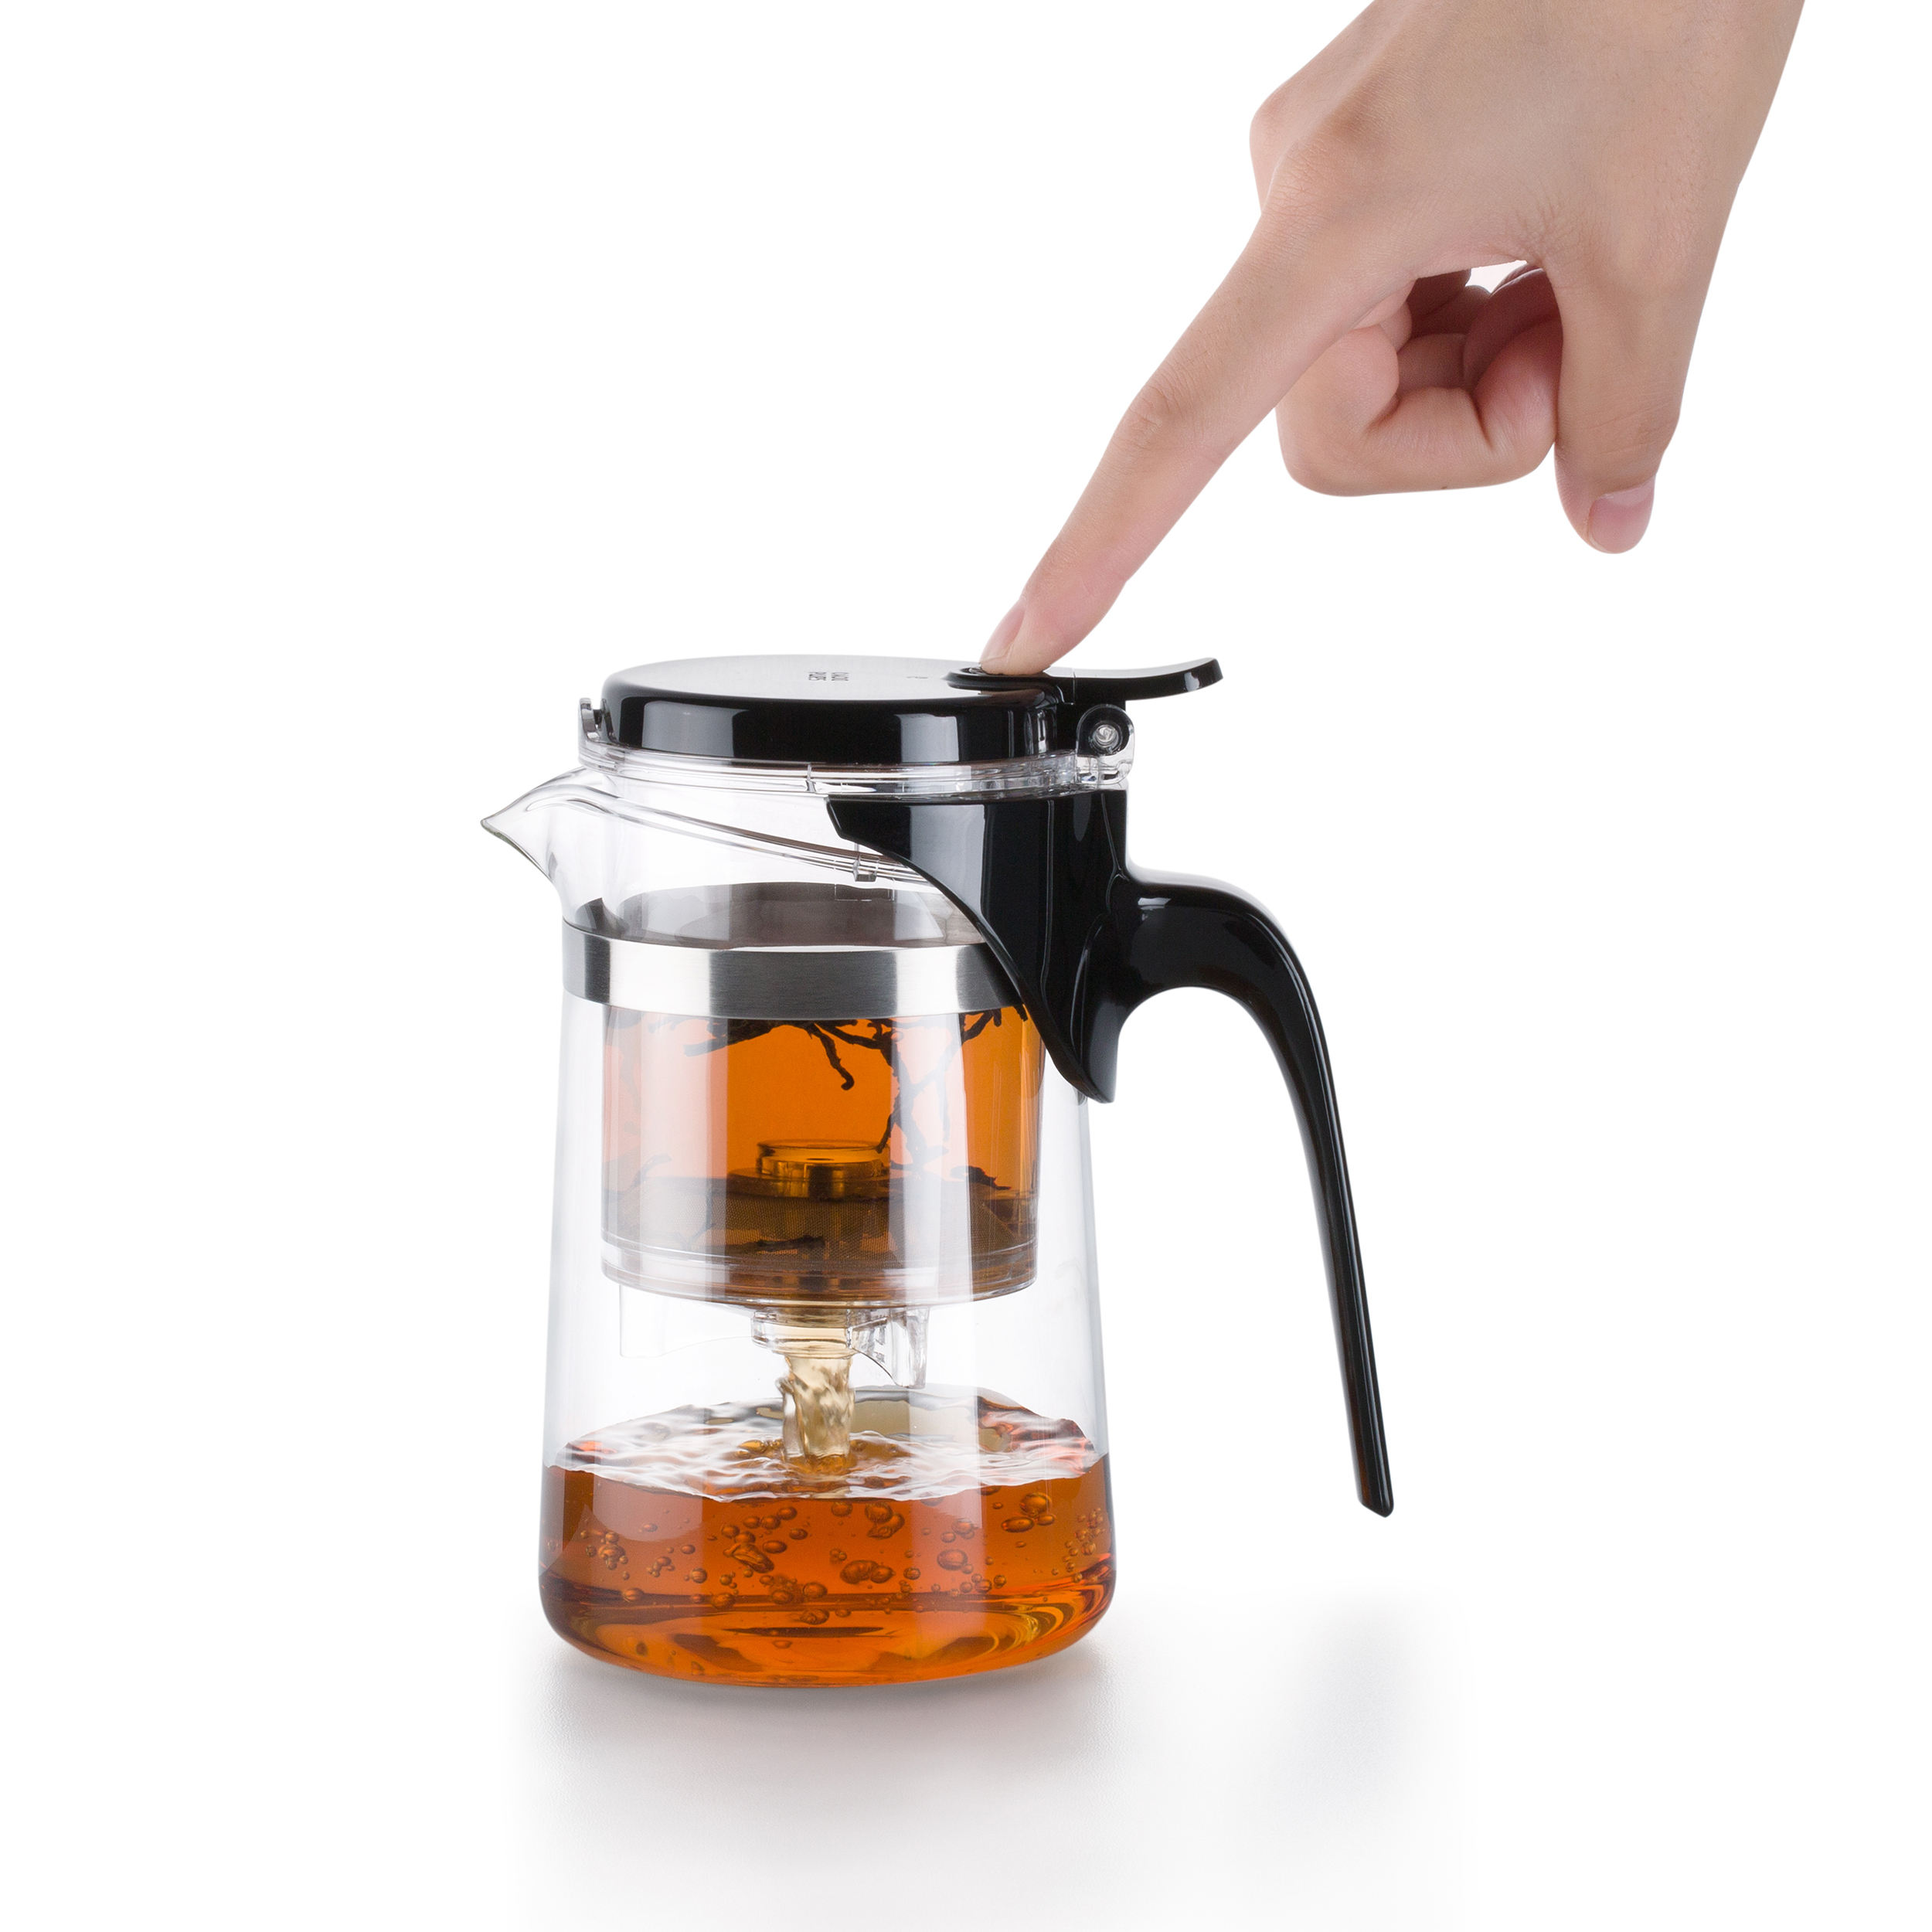 Samadoyo integrated glass tea pot with infuser for easy tea making